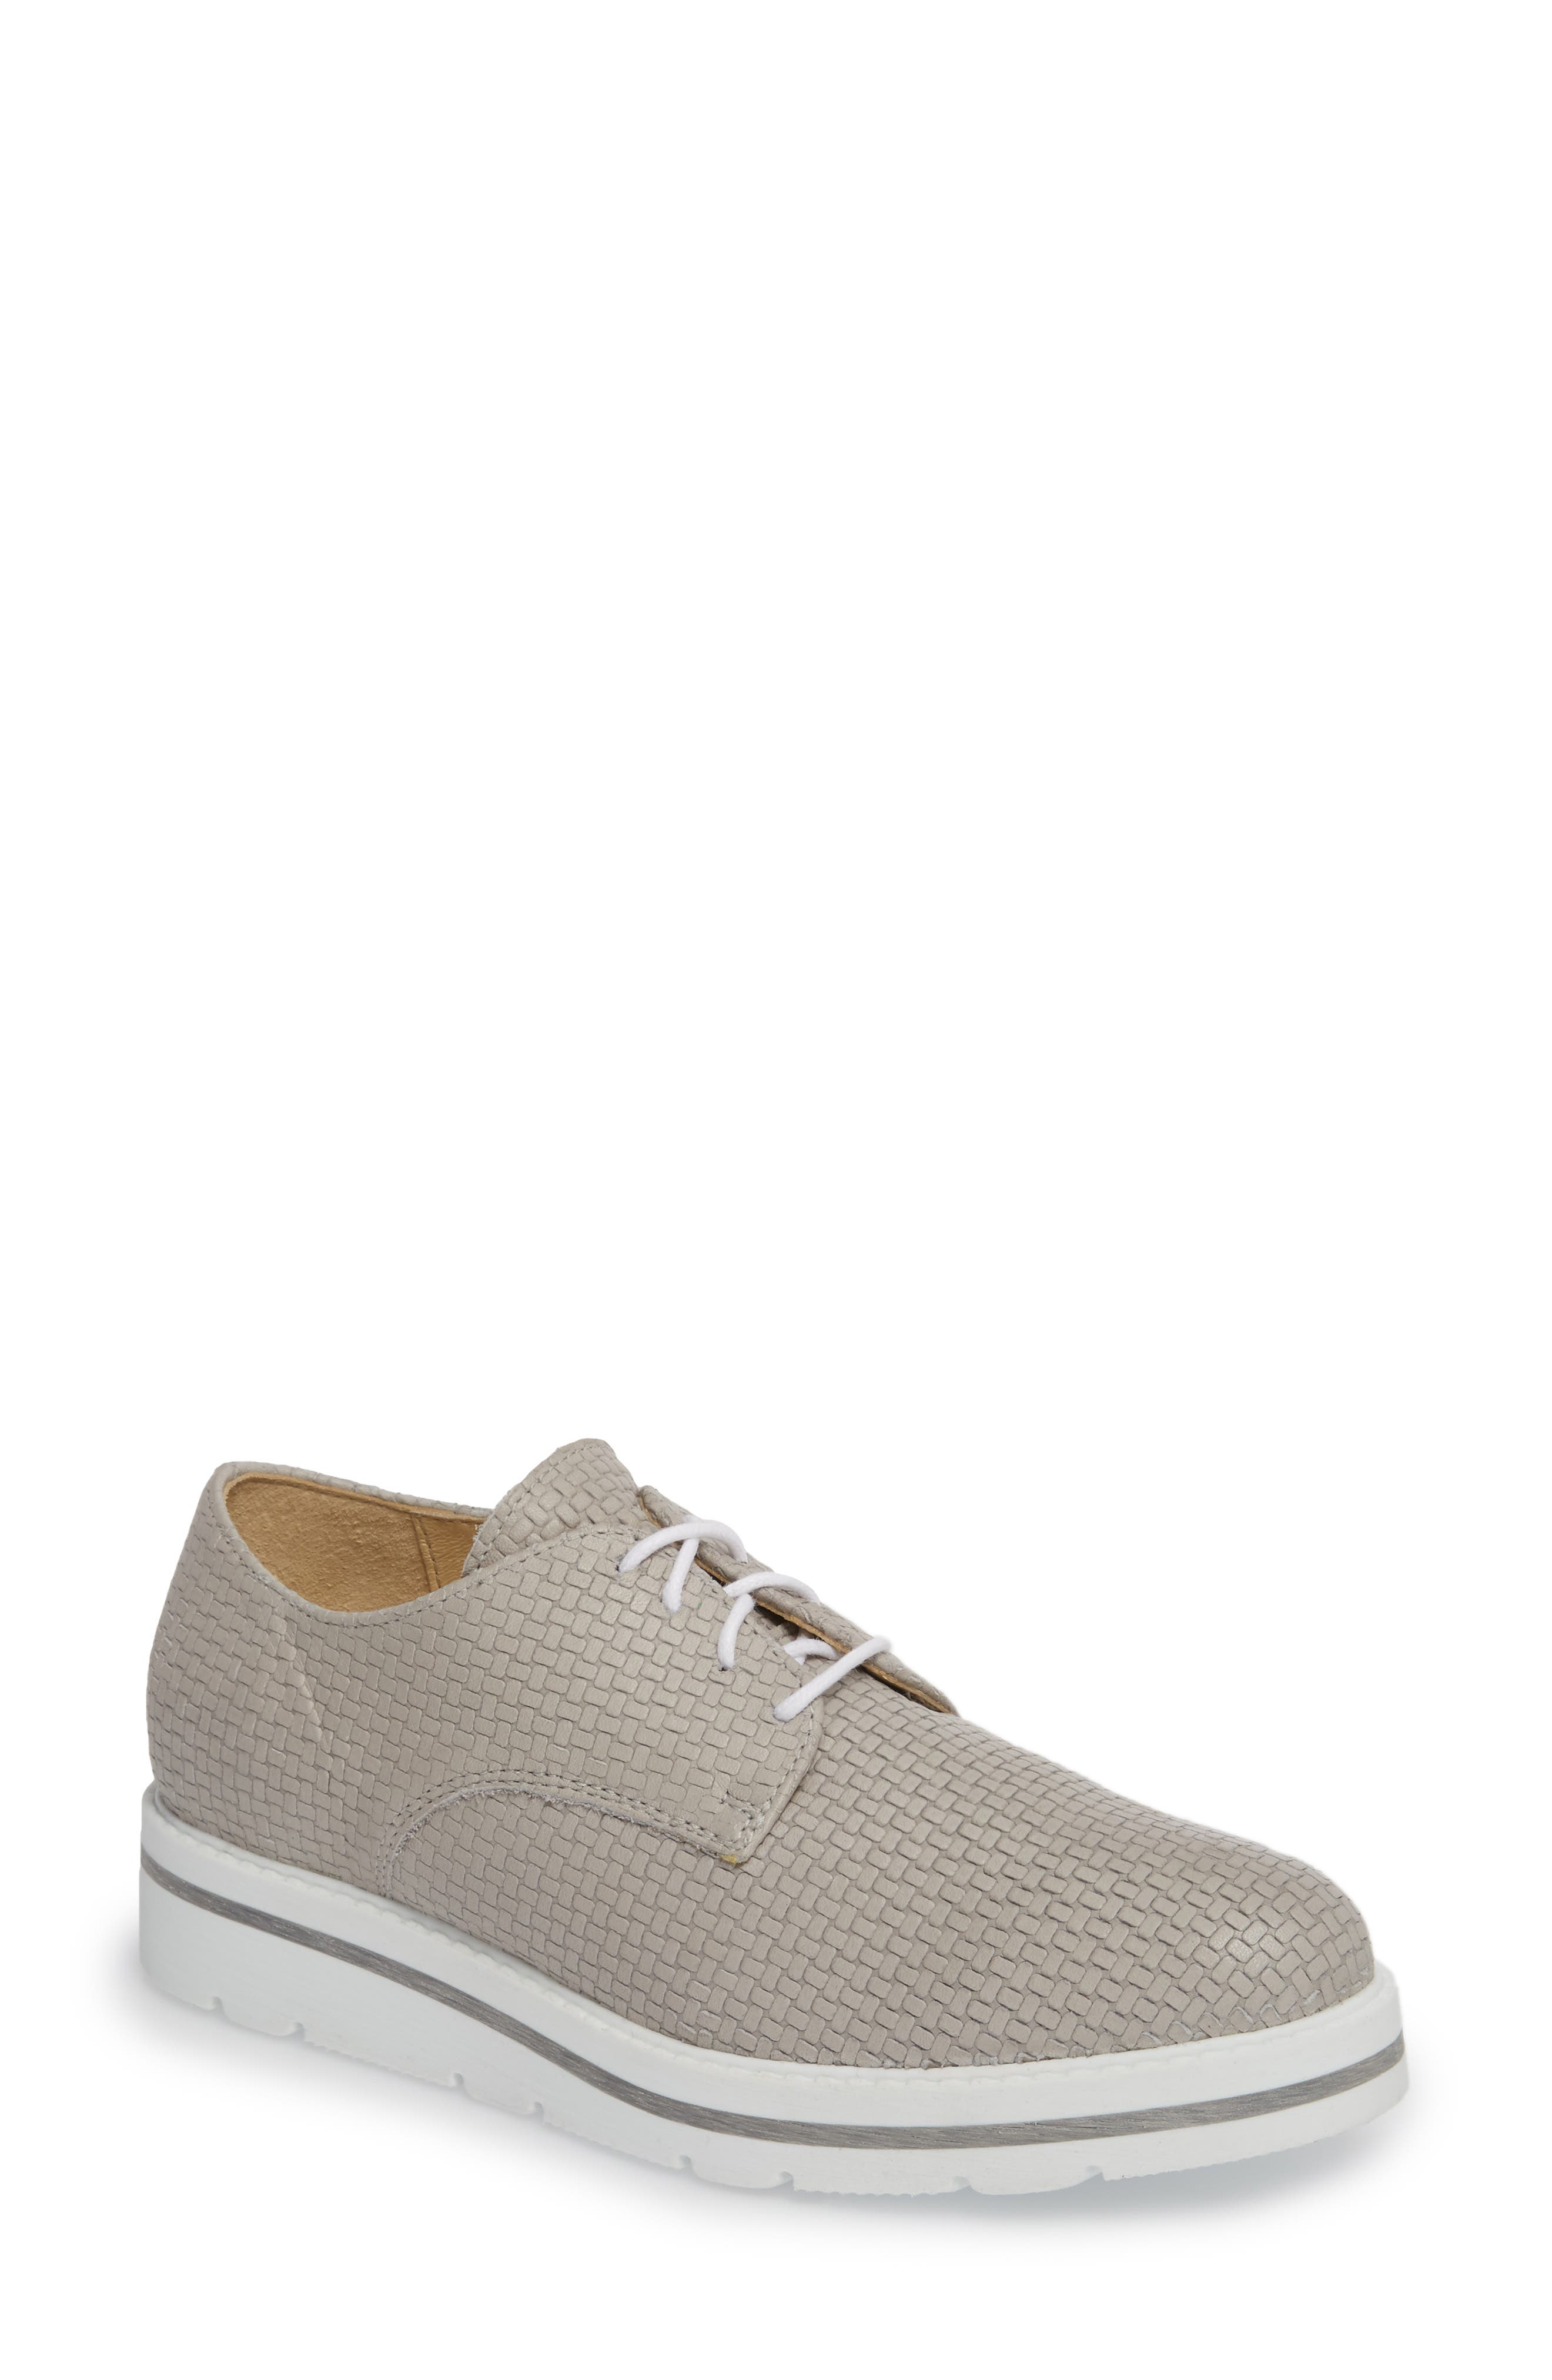 Lando Sneaker Derby,                         Main,                         color, Light Grey Sauvage Leather